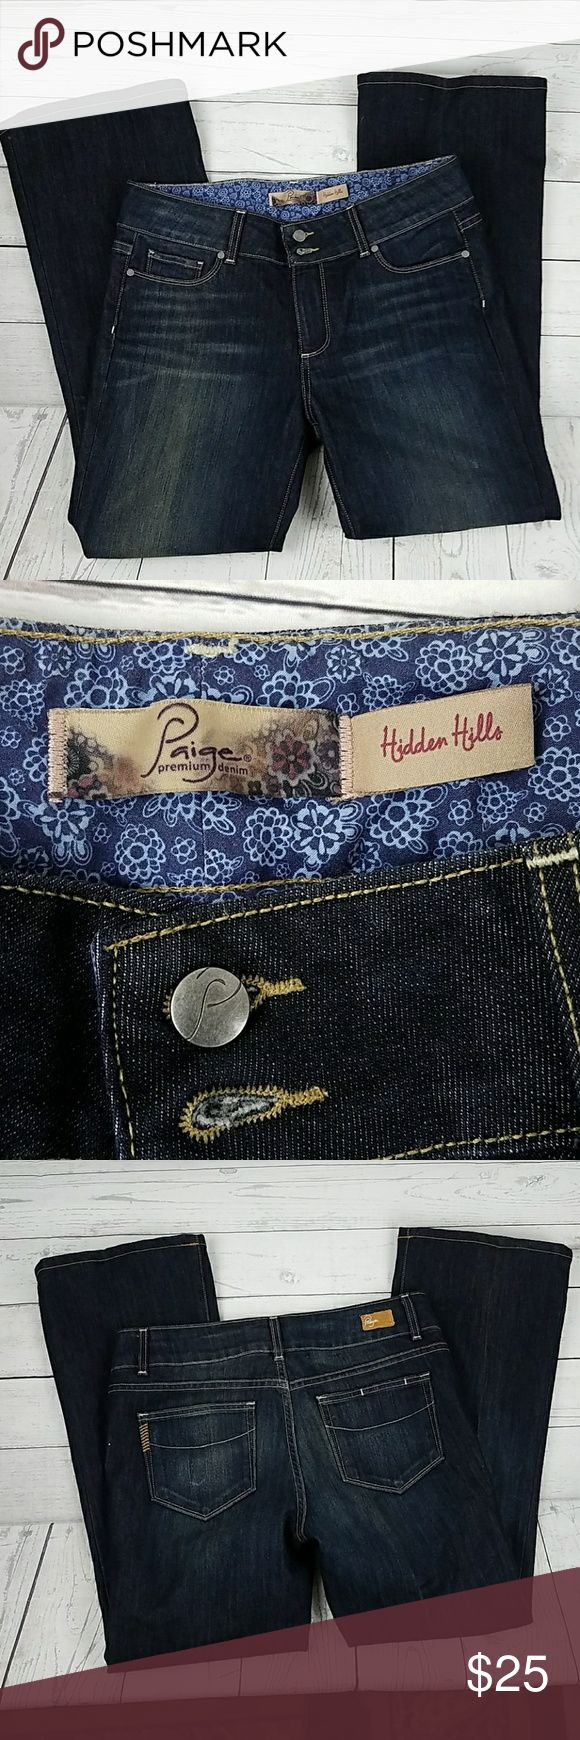 Women's Paige Jean's Boot Cut Size 31 Women's Paige Jean's are in good condition. Gently Worn. Boot Cut Size 31 Inseam 29 Rise 9 Waist 16 inches Paige Jeans Jeans Boot Cut